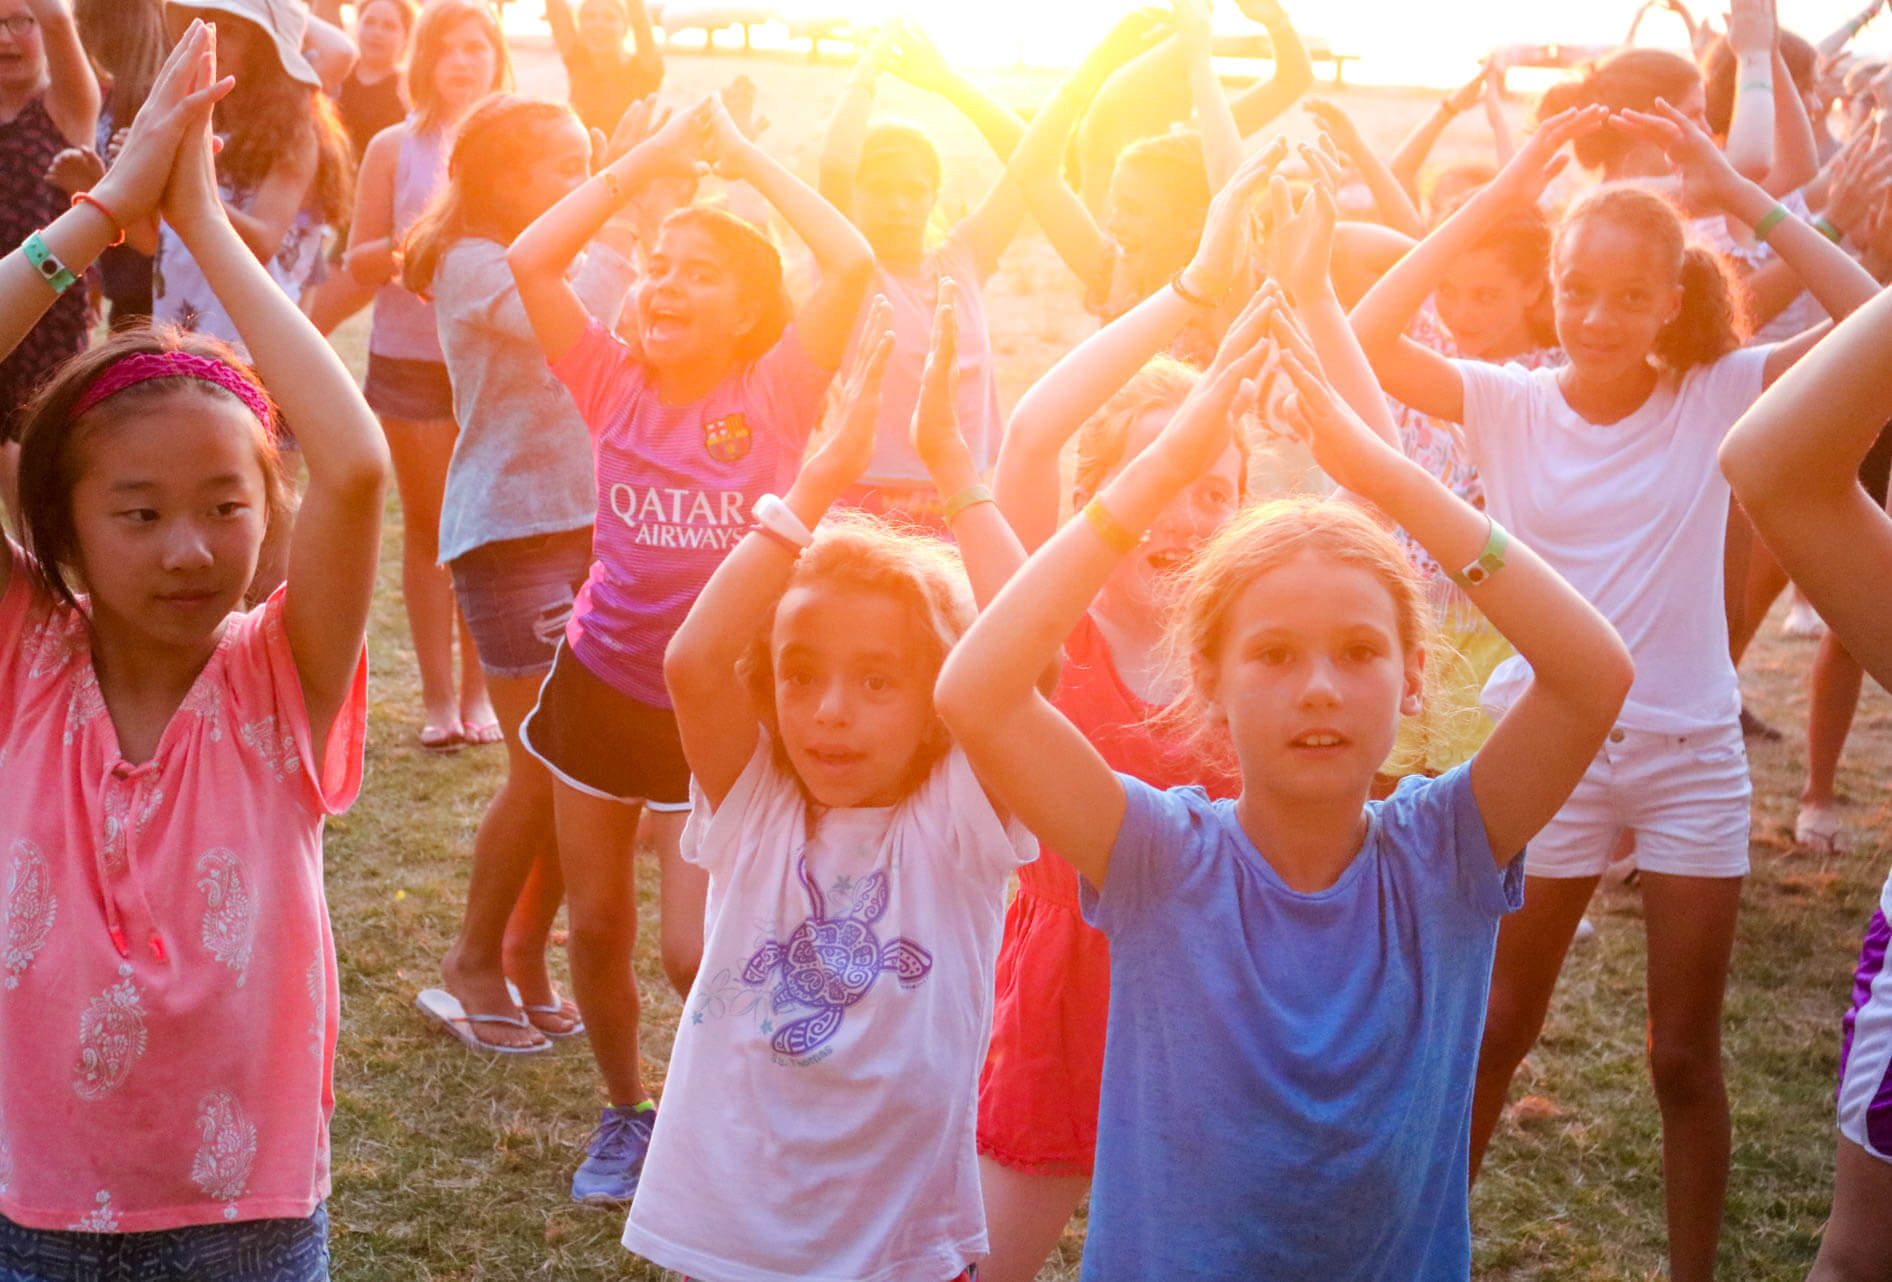 Group of campers dance with sunset behind them